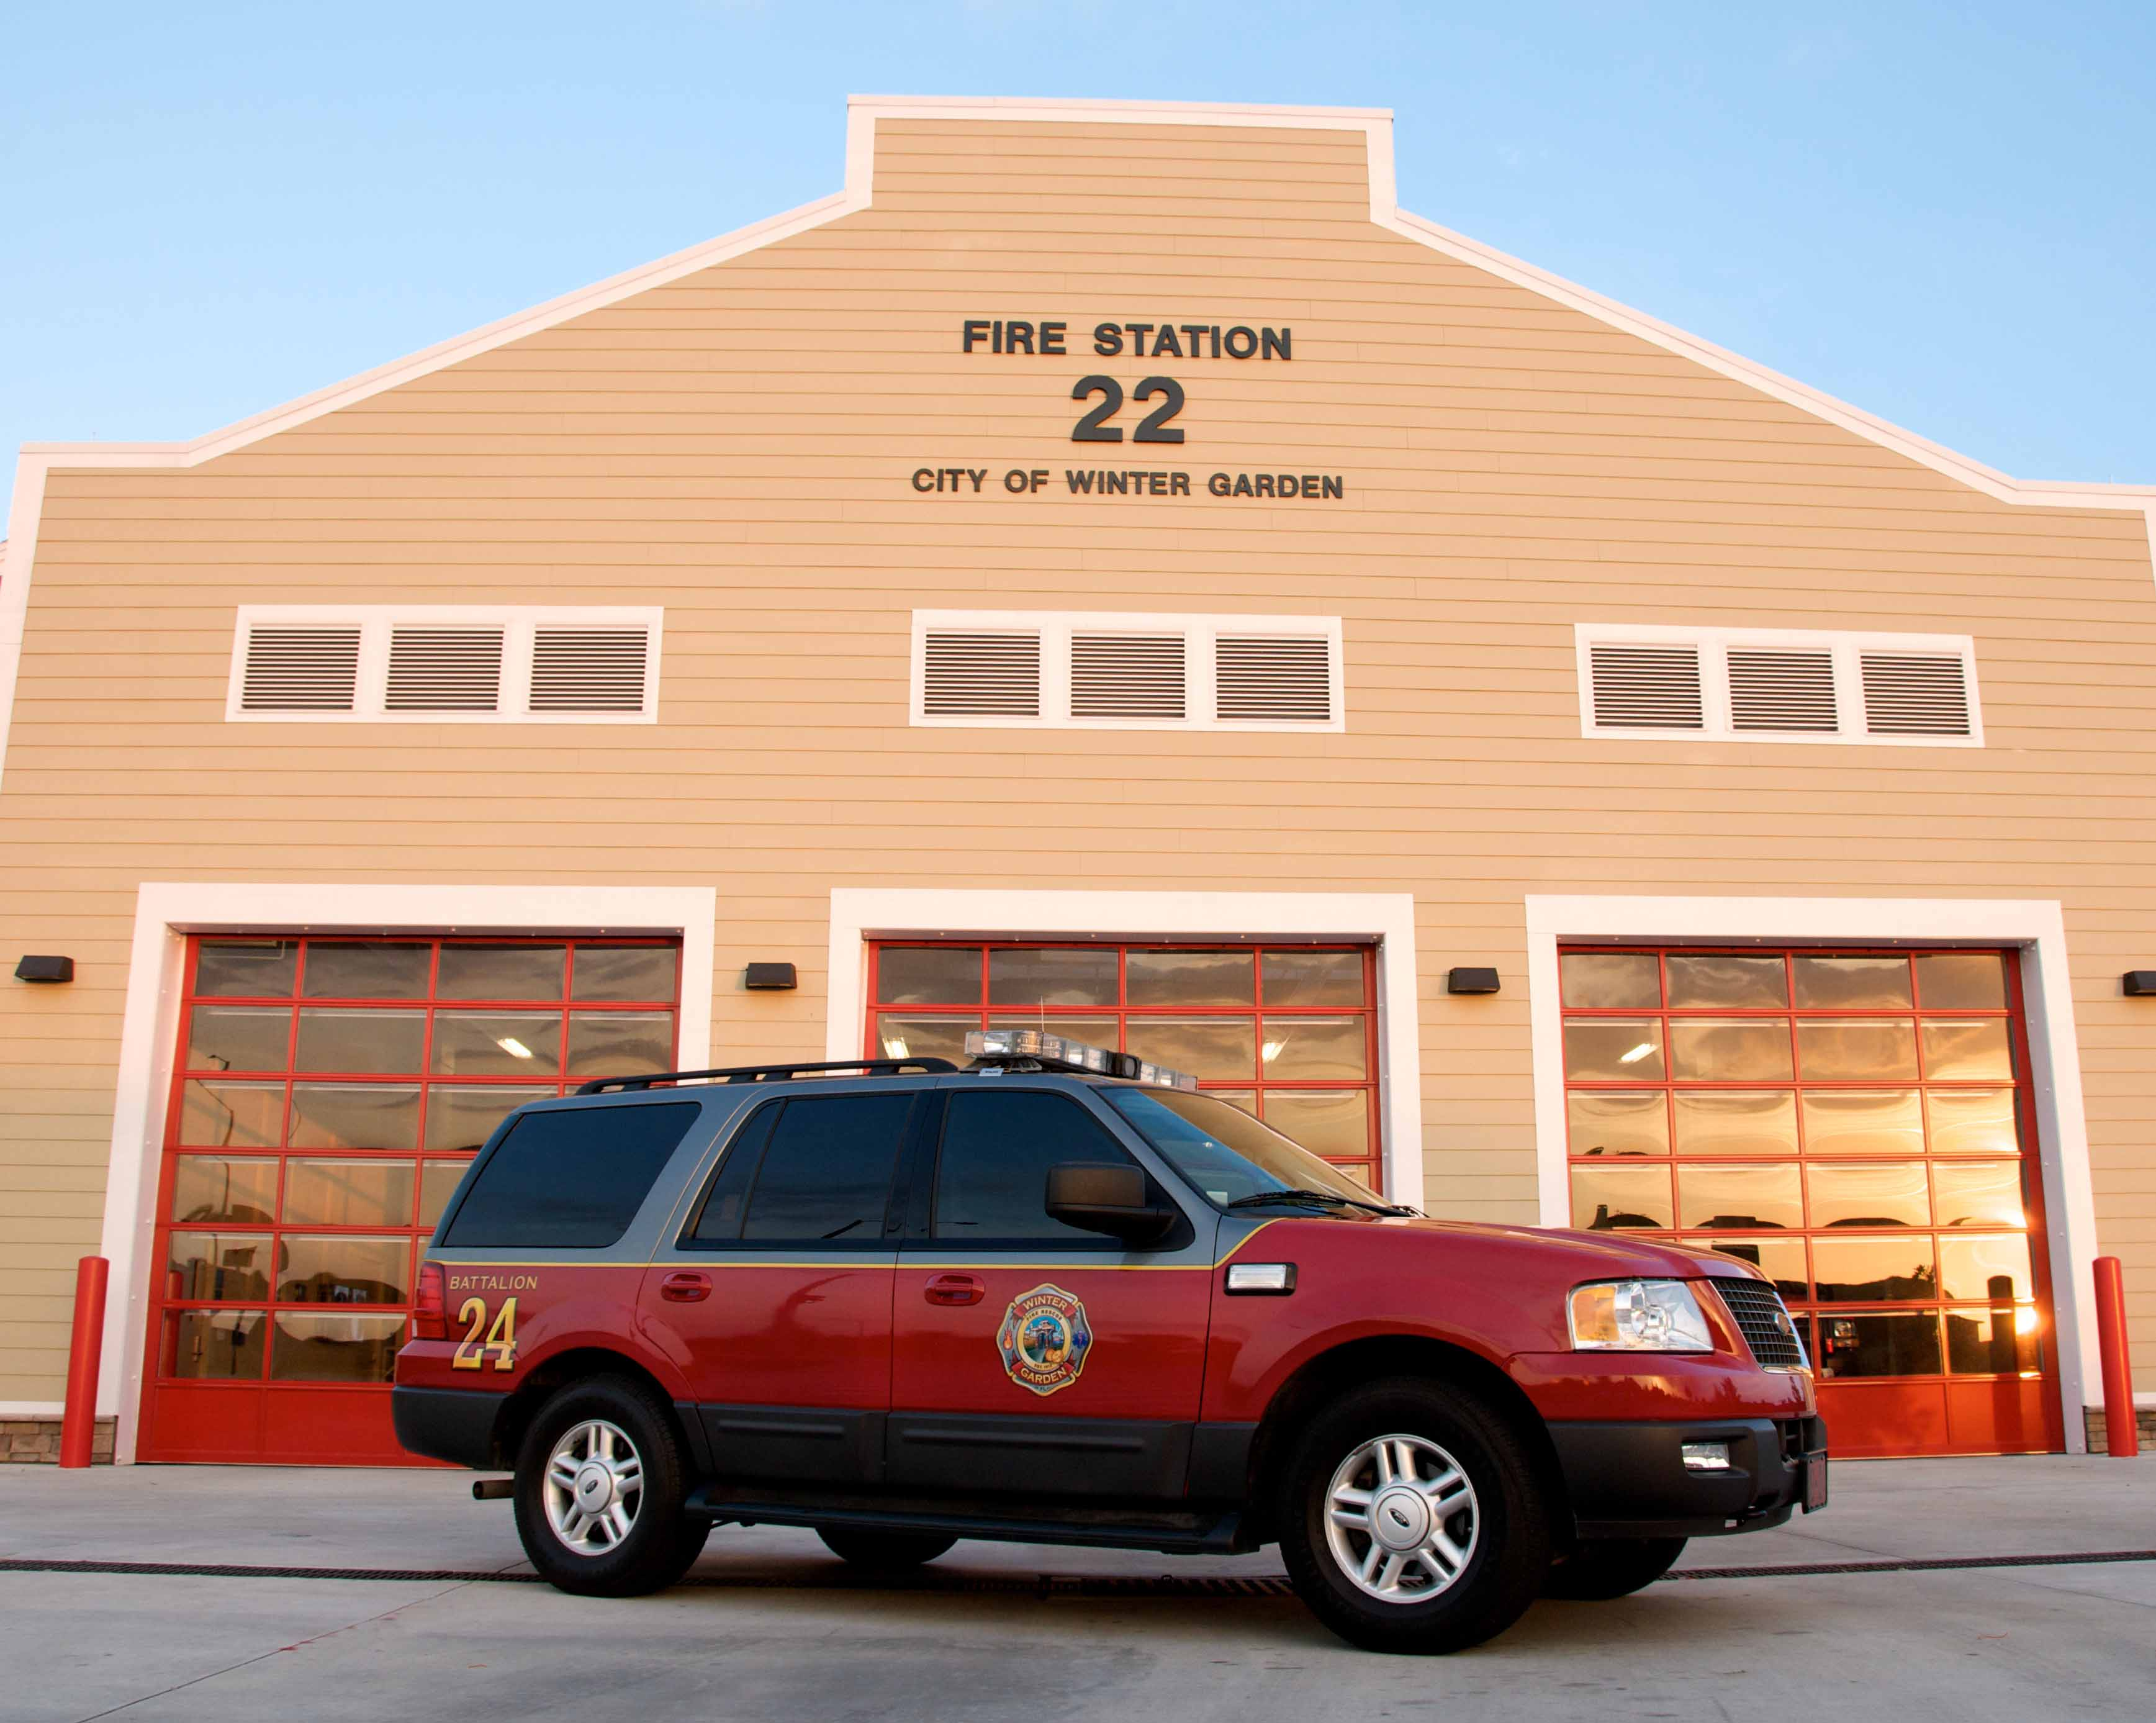 2009 Vehicle 24 post 22 (JPG)